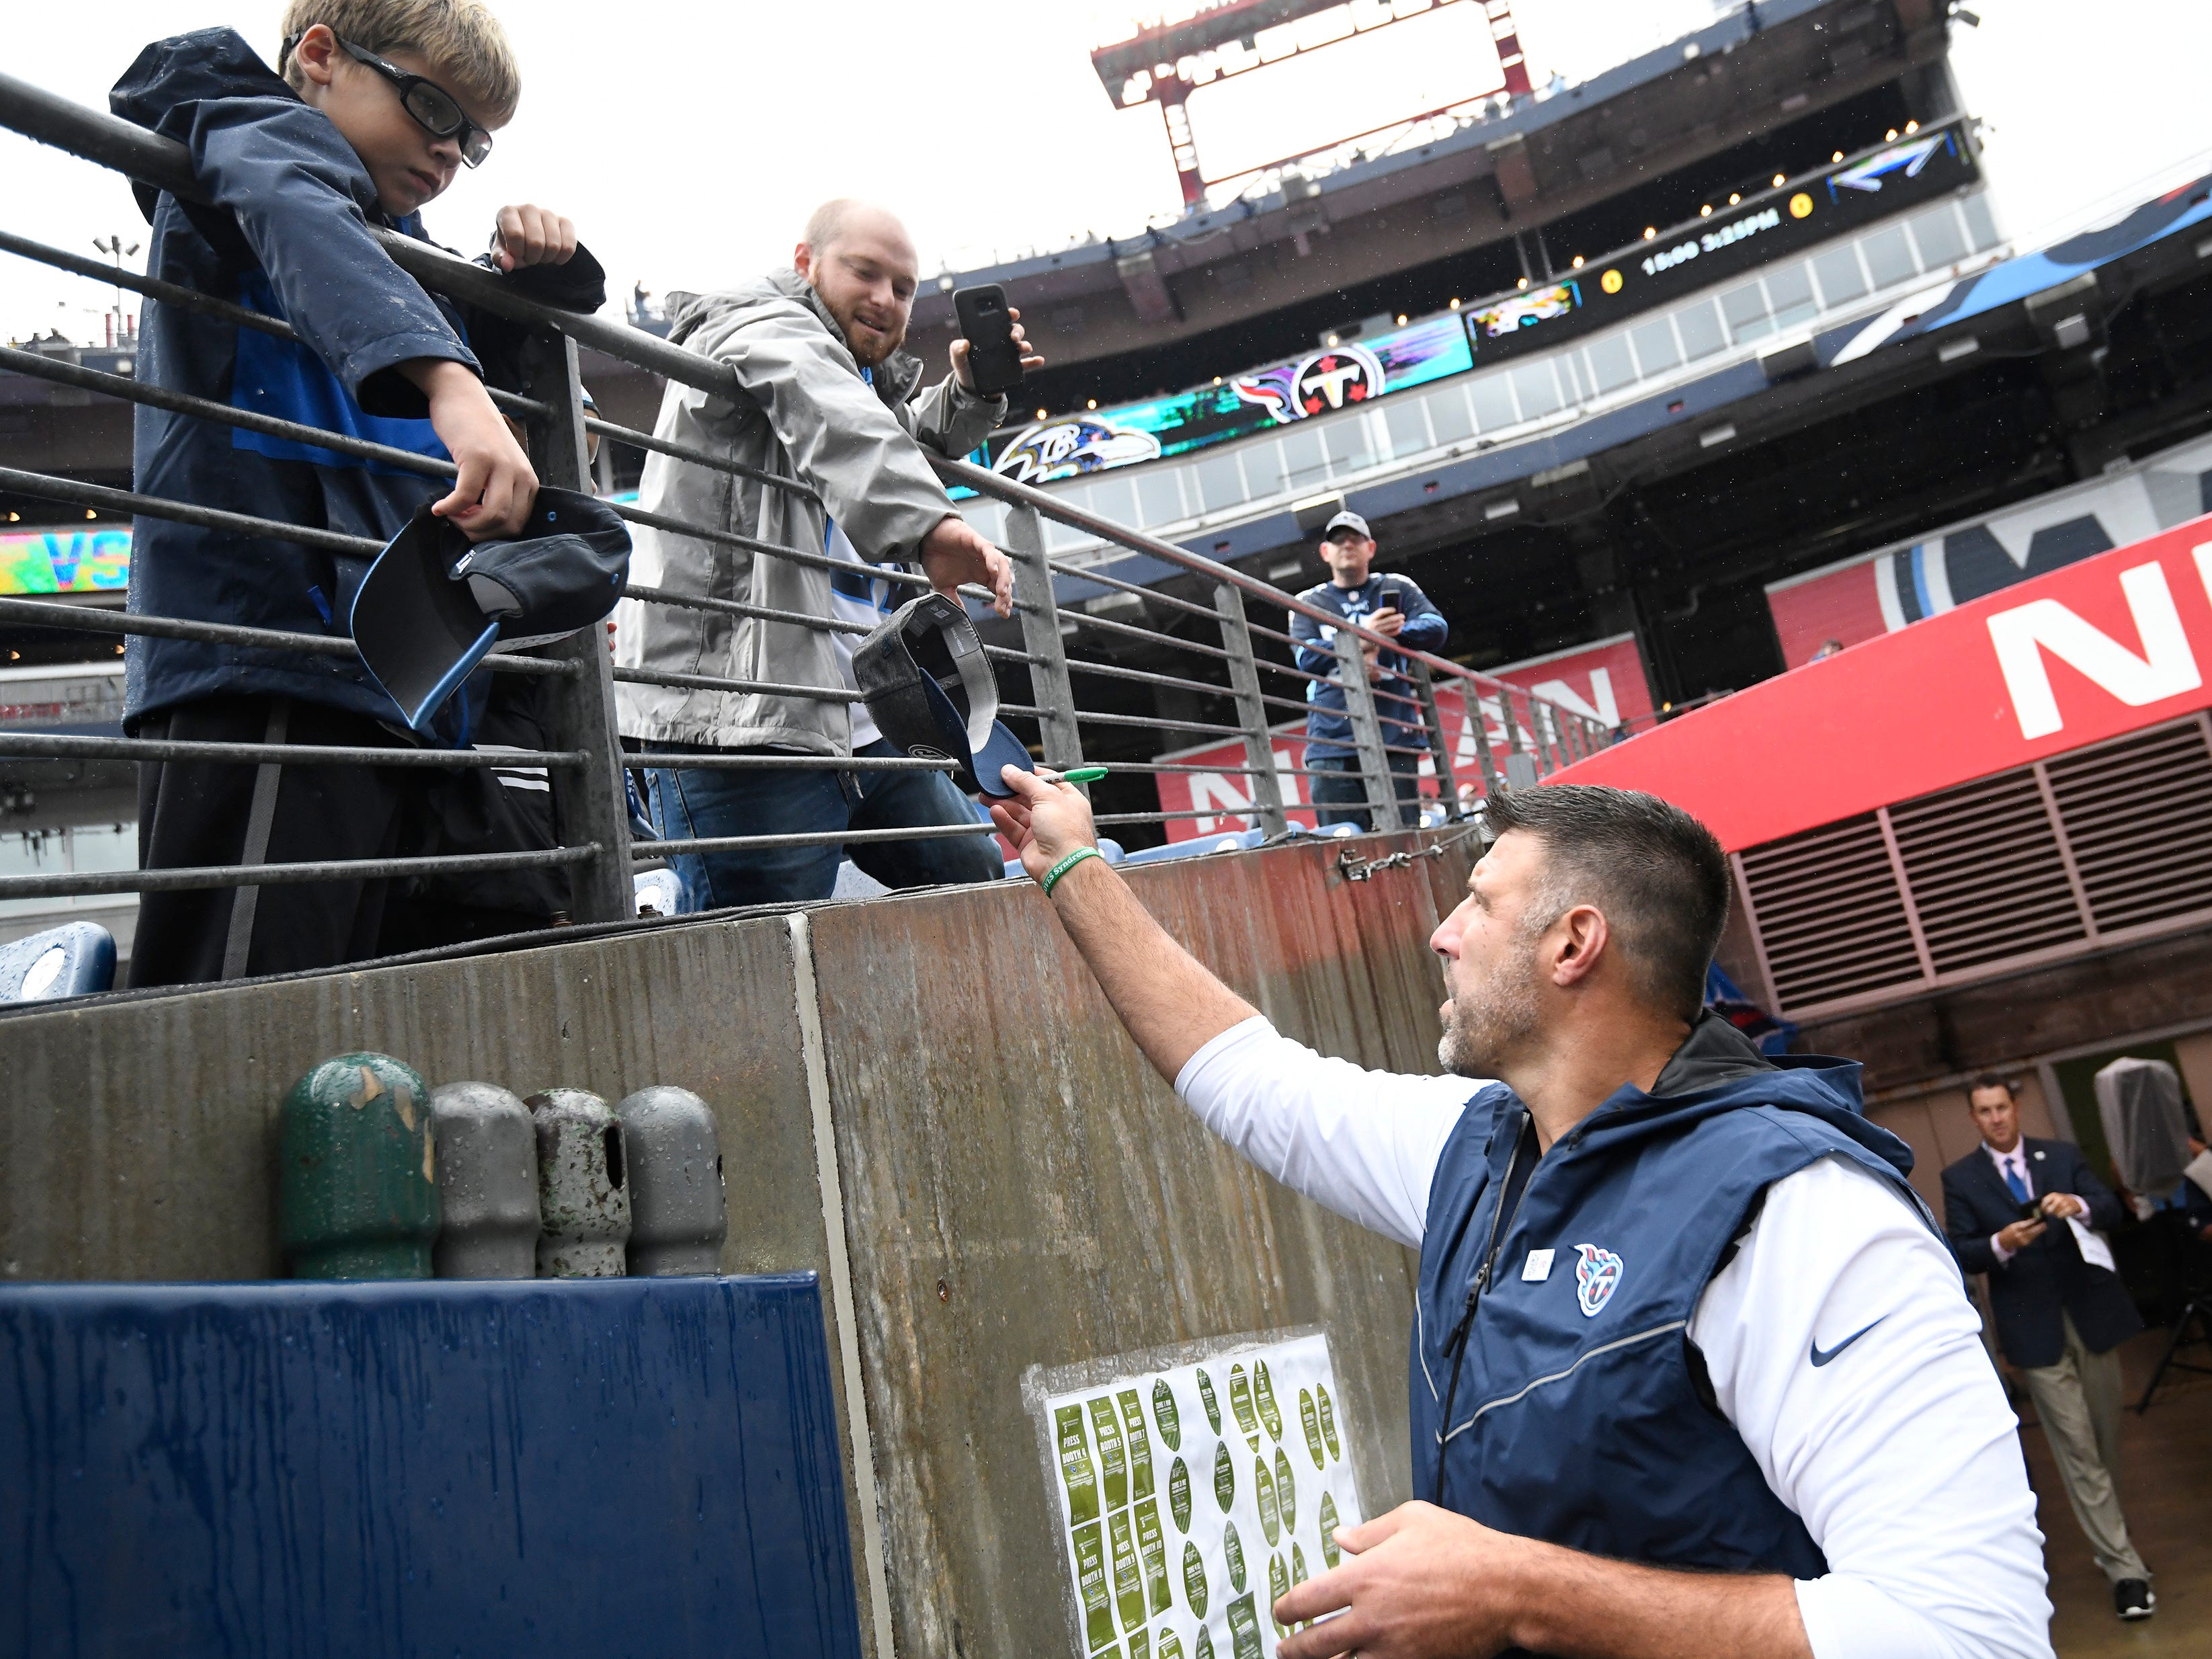 Titans head coach Mike Vrabel greets fans before the game at Nissan Stadium Sunday, Oct. 14, 2018, in Nashville, Tenn.